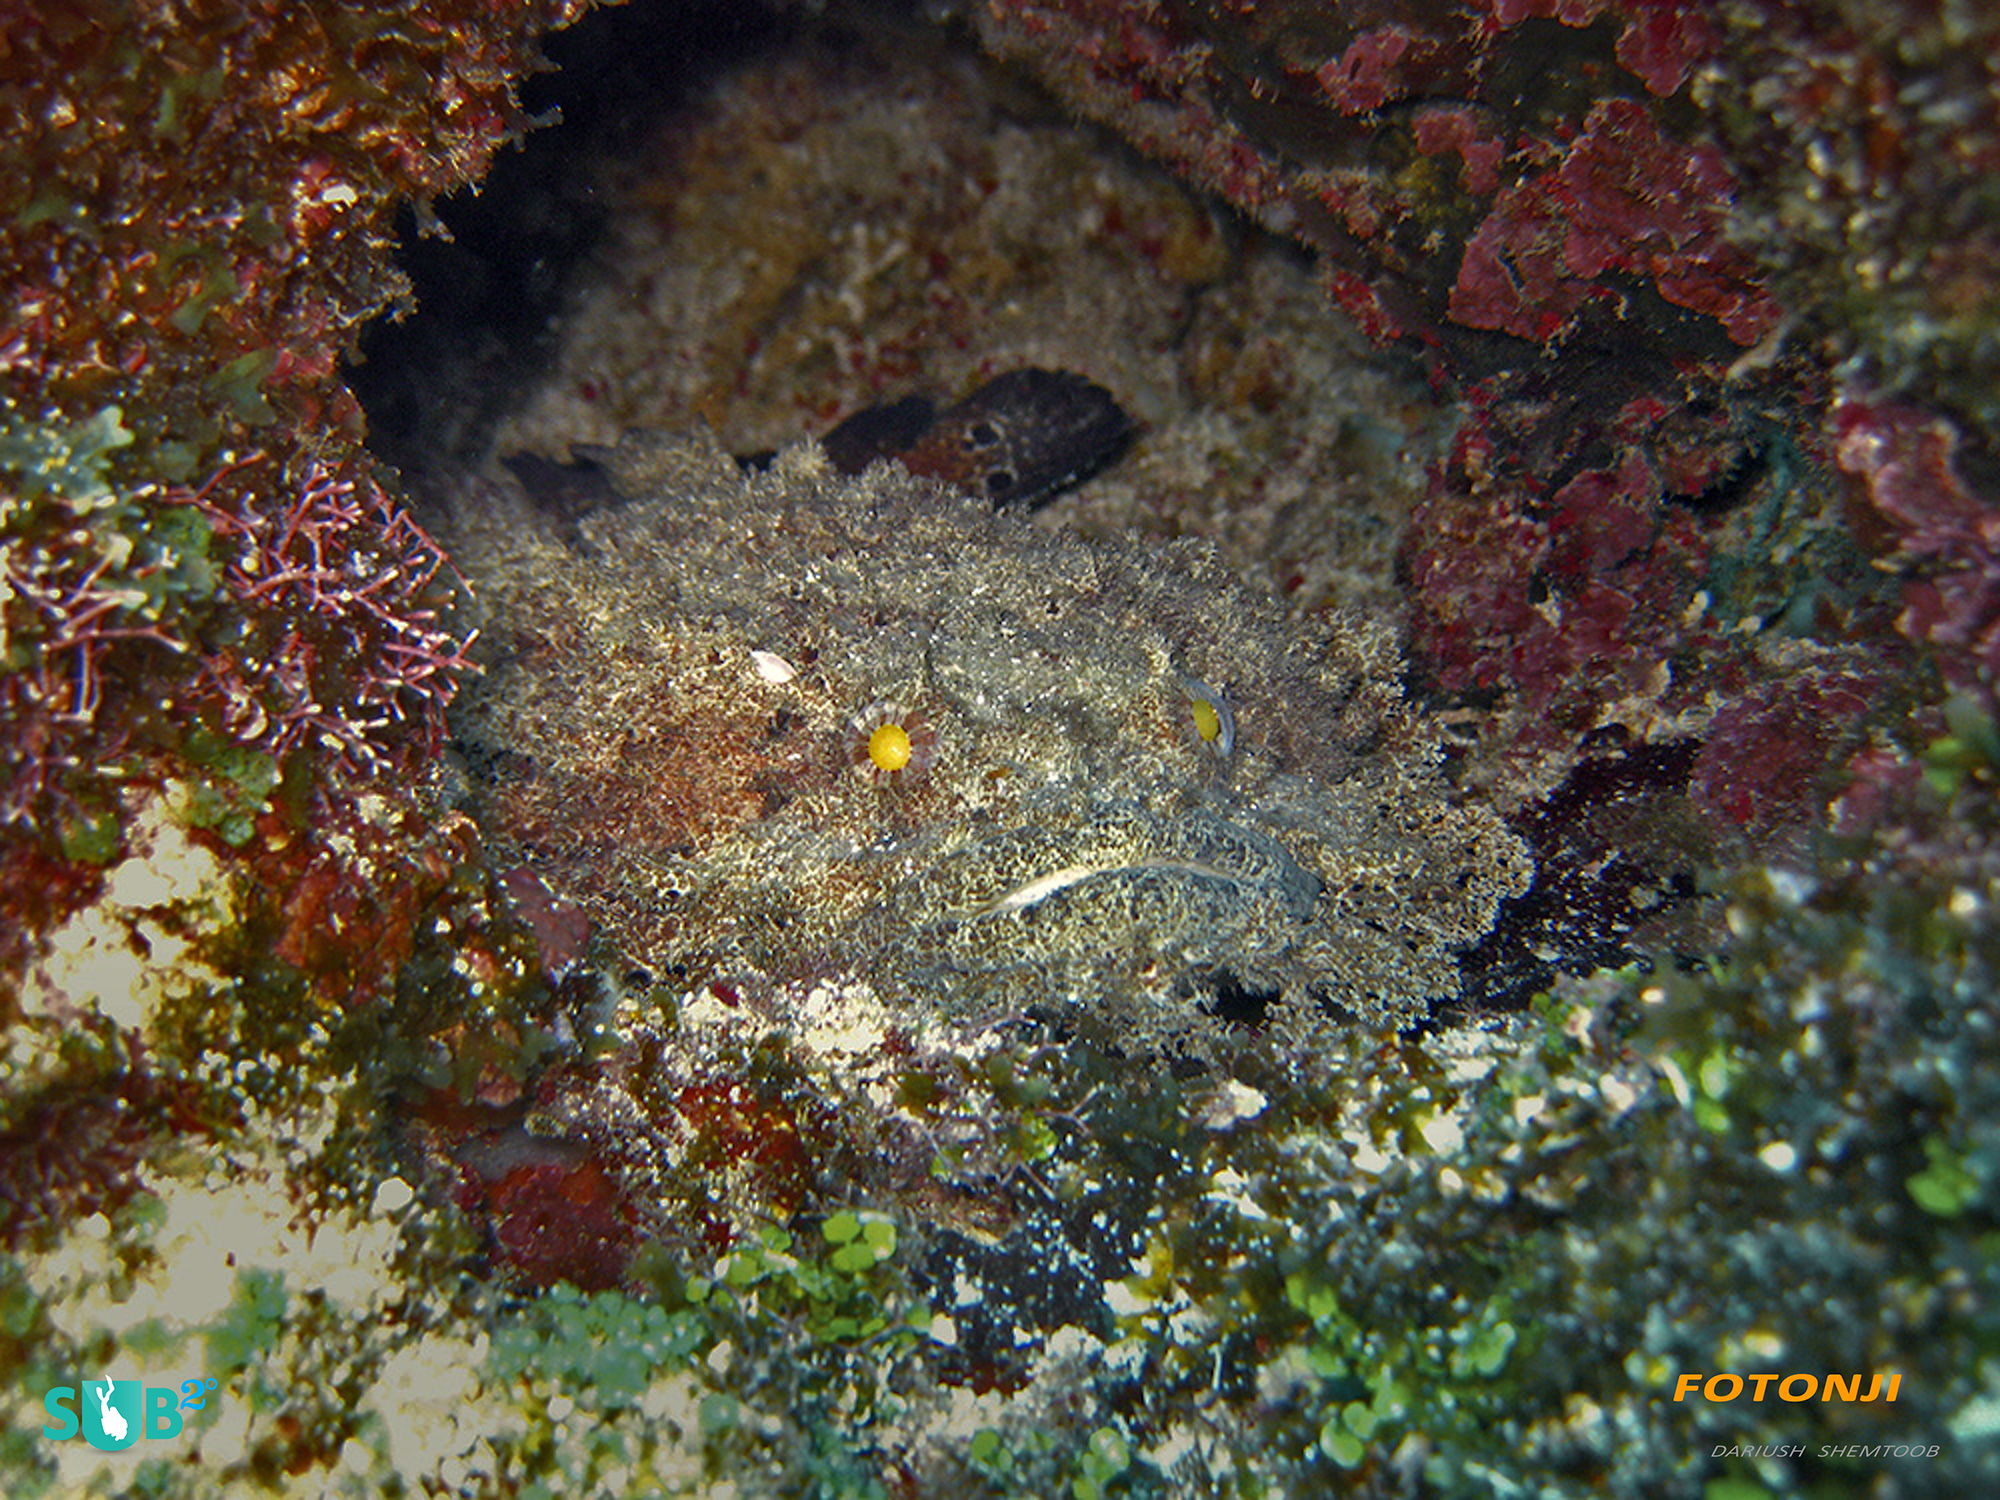 The Devil Fish is one of the more unique finds in the Corn Islands